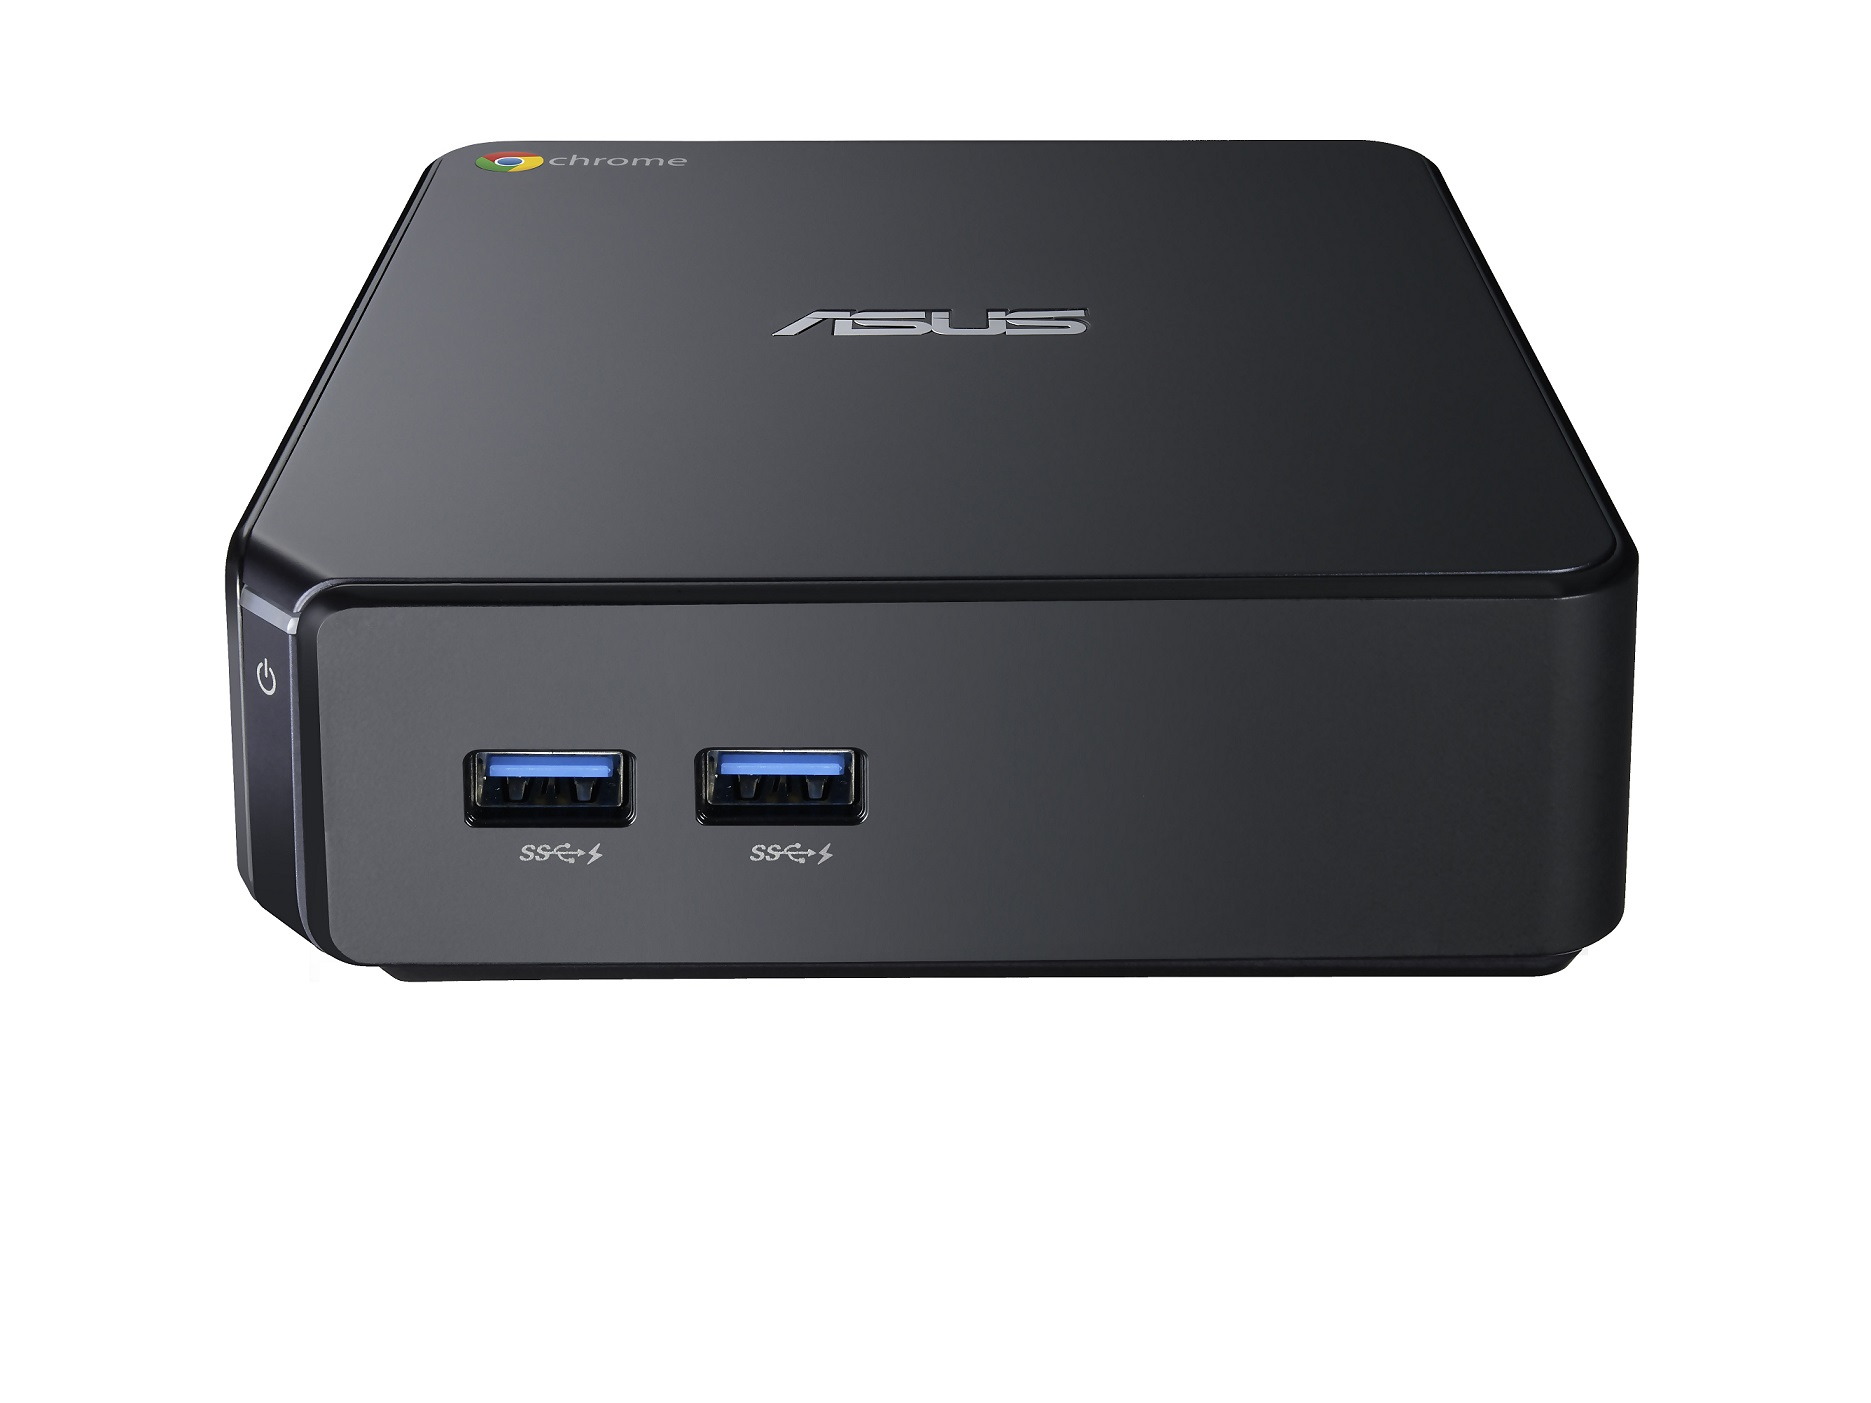 ASUS Chromebox The worldíŽs smallest and most powerful Chromebox